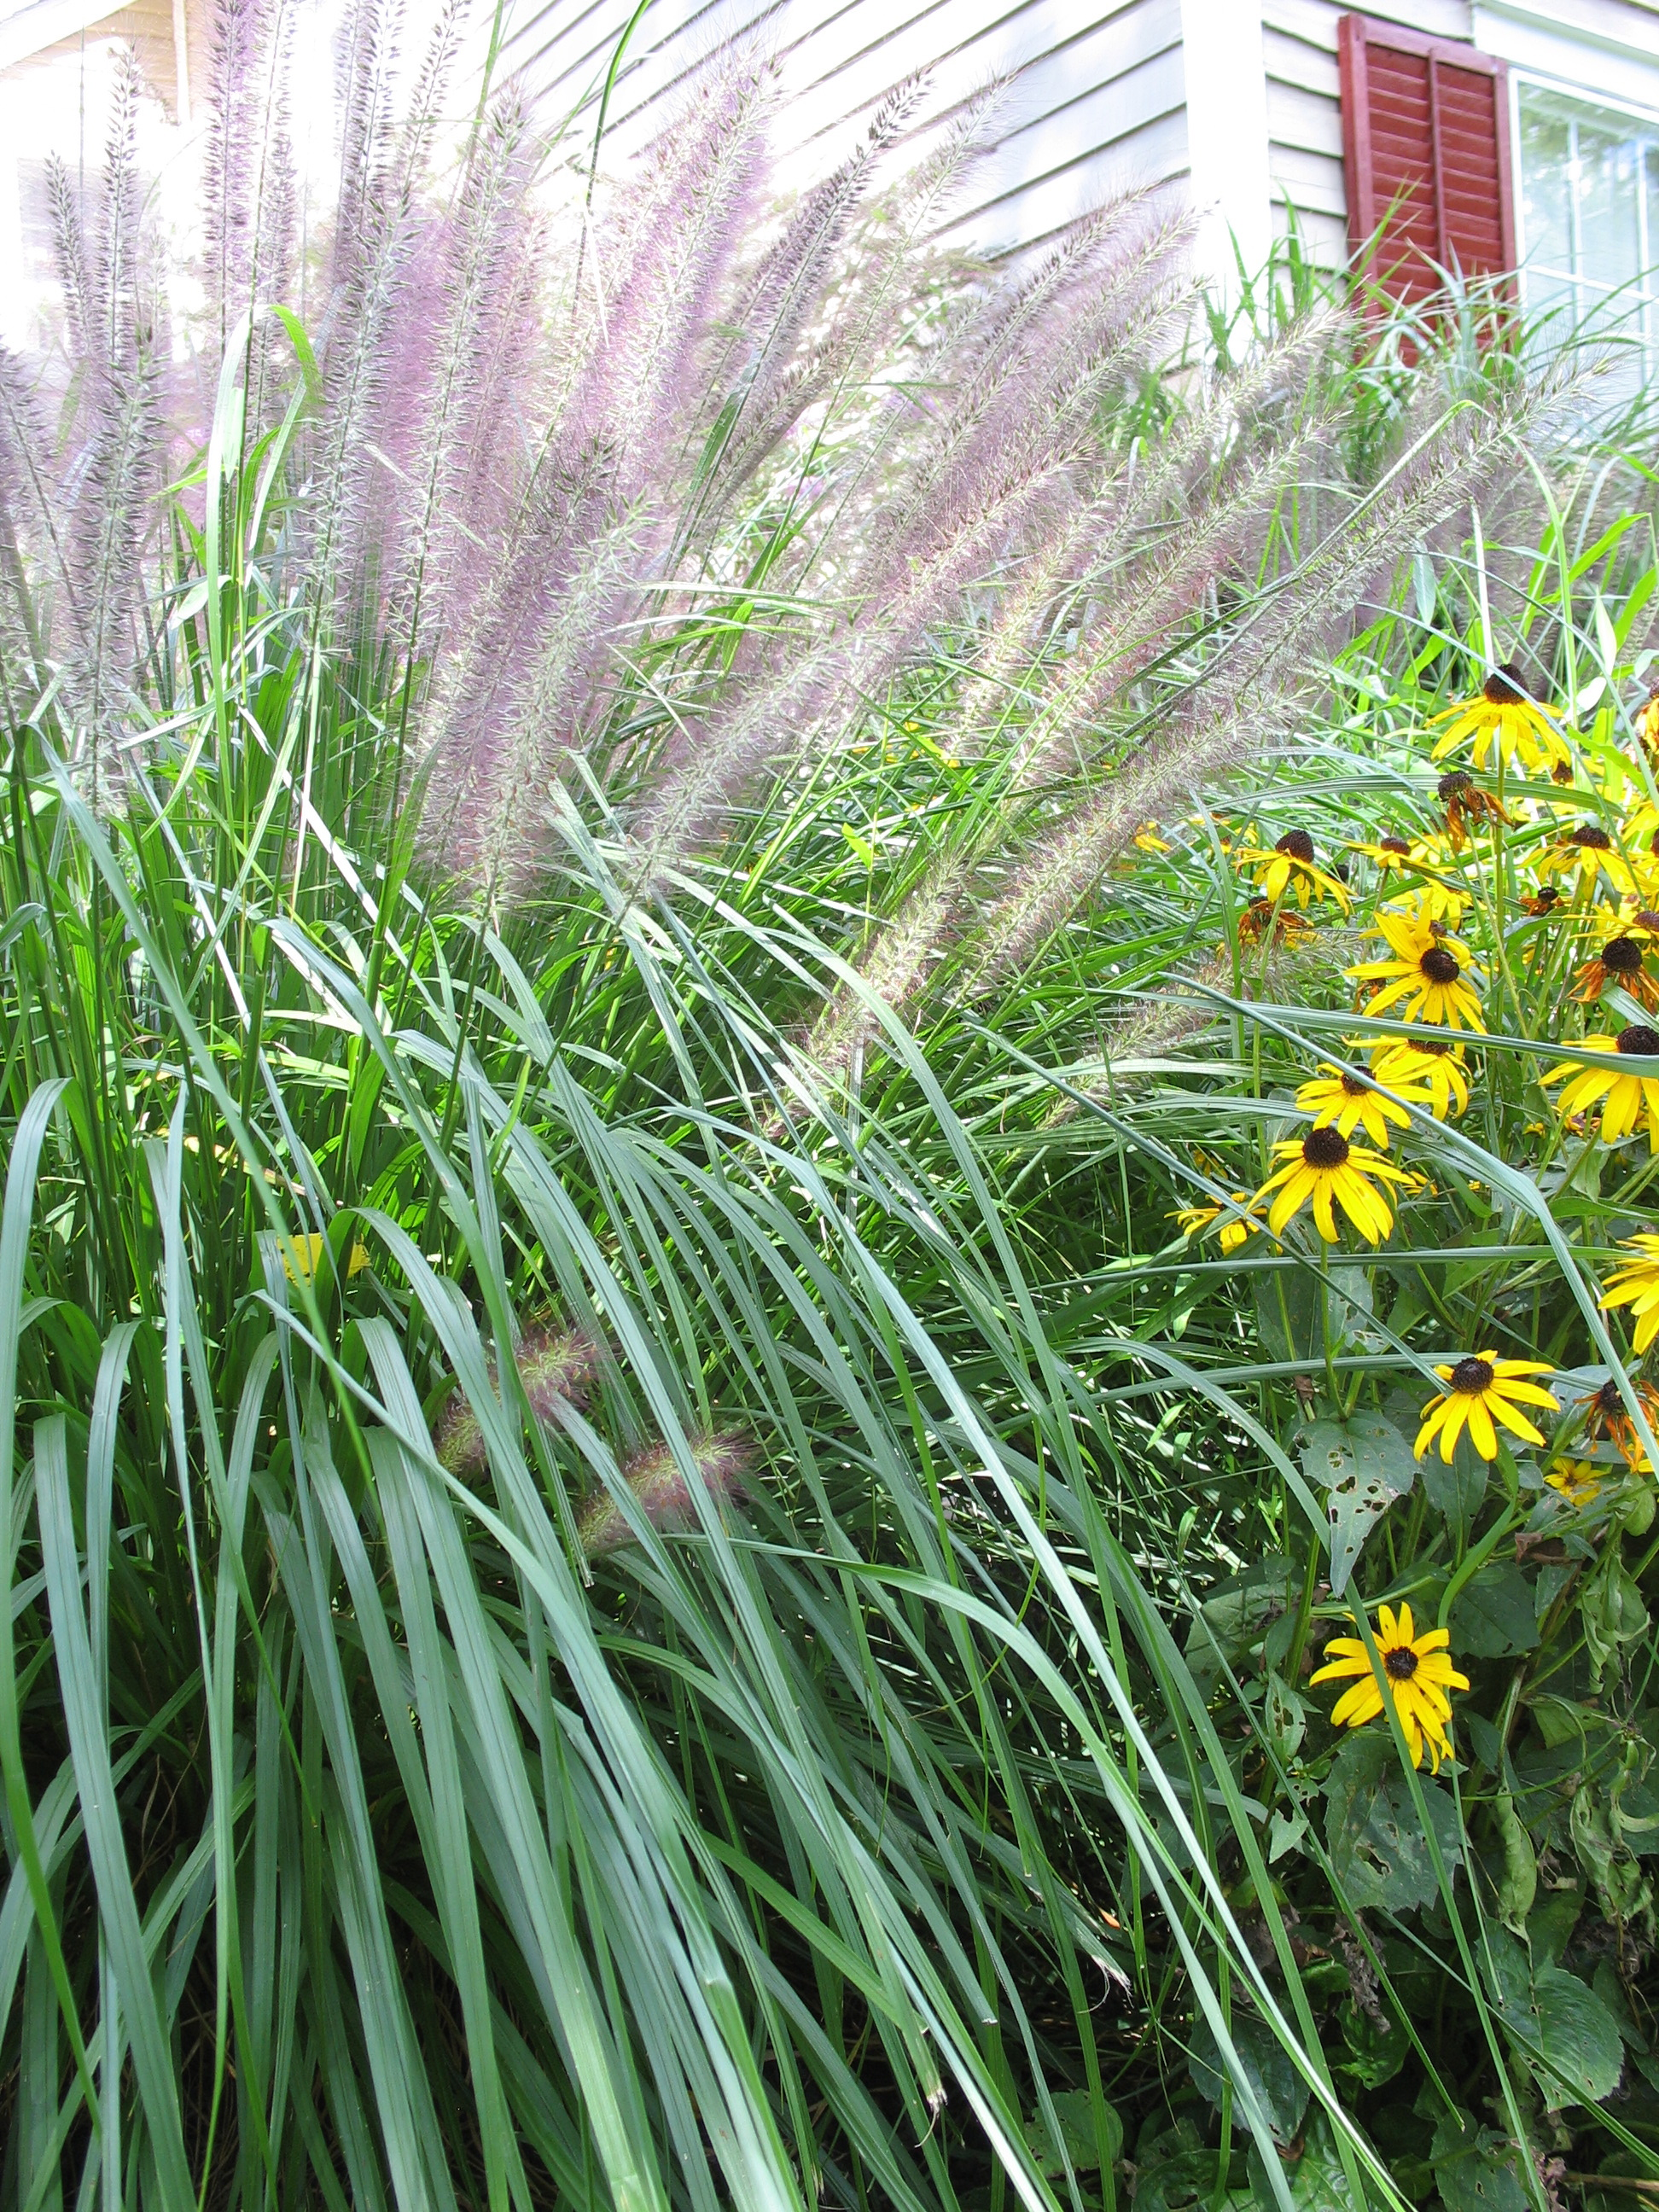 Our bushy tails are sagging the squirrel nutwork for Ornamental grasses for ponds